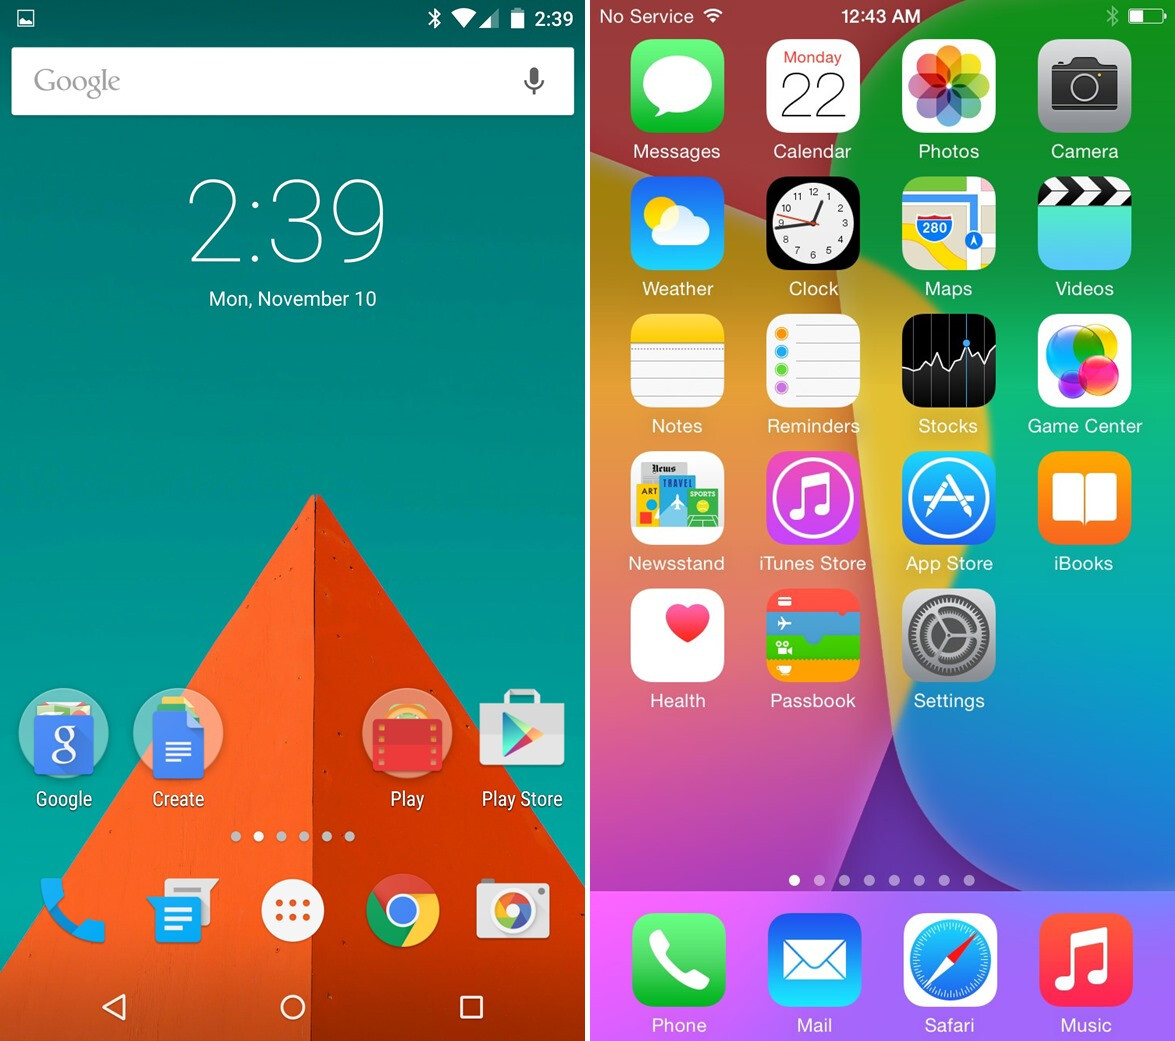 android 5 0 lollipop totally crushes ios 8 in terms of interface android 5 0 lollipop vs ios 8 design showdown